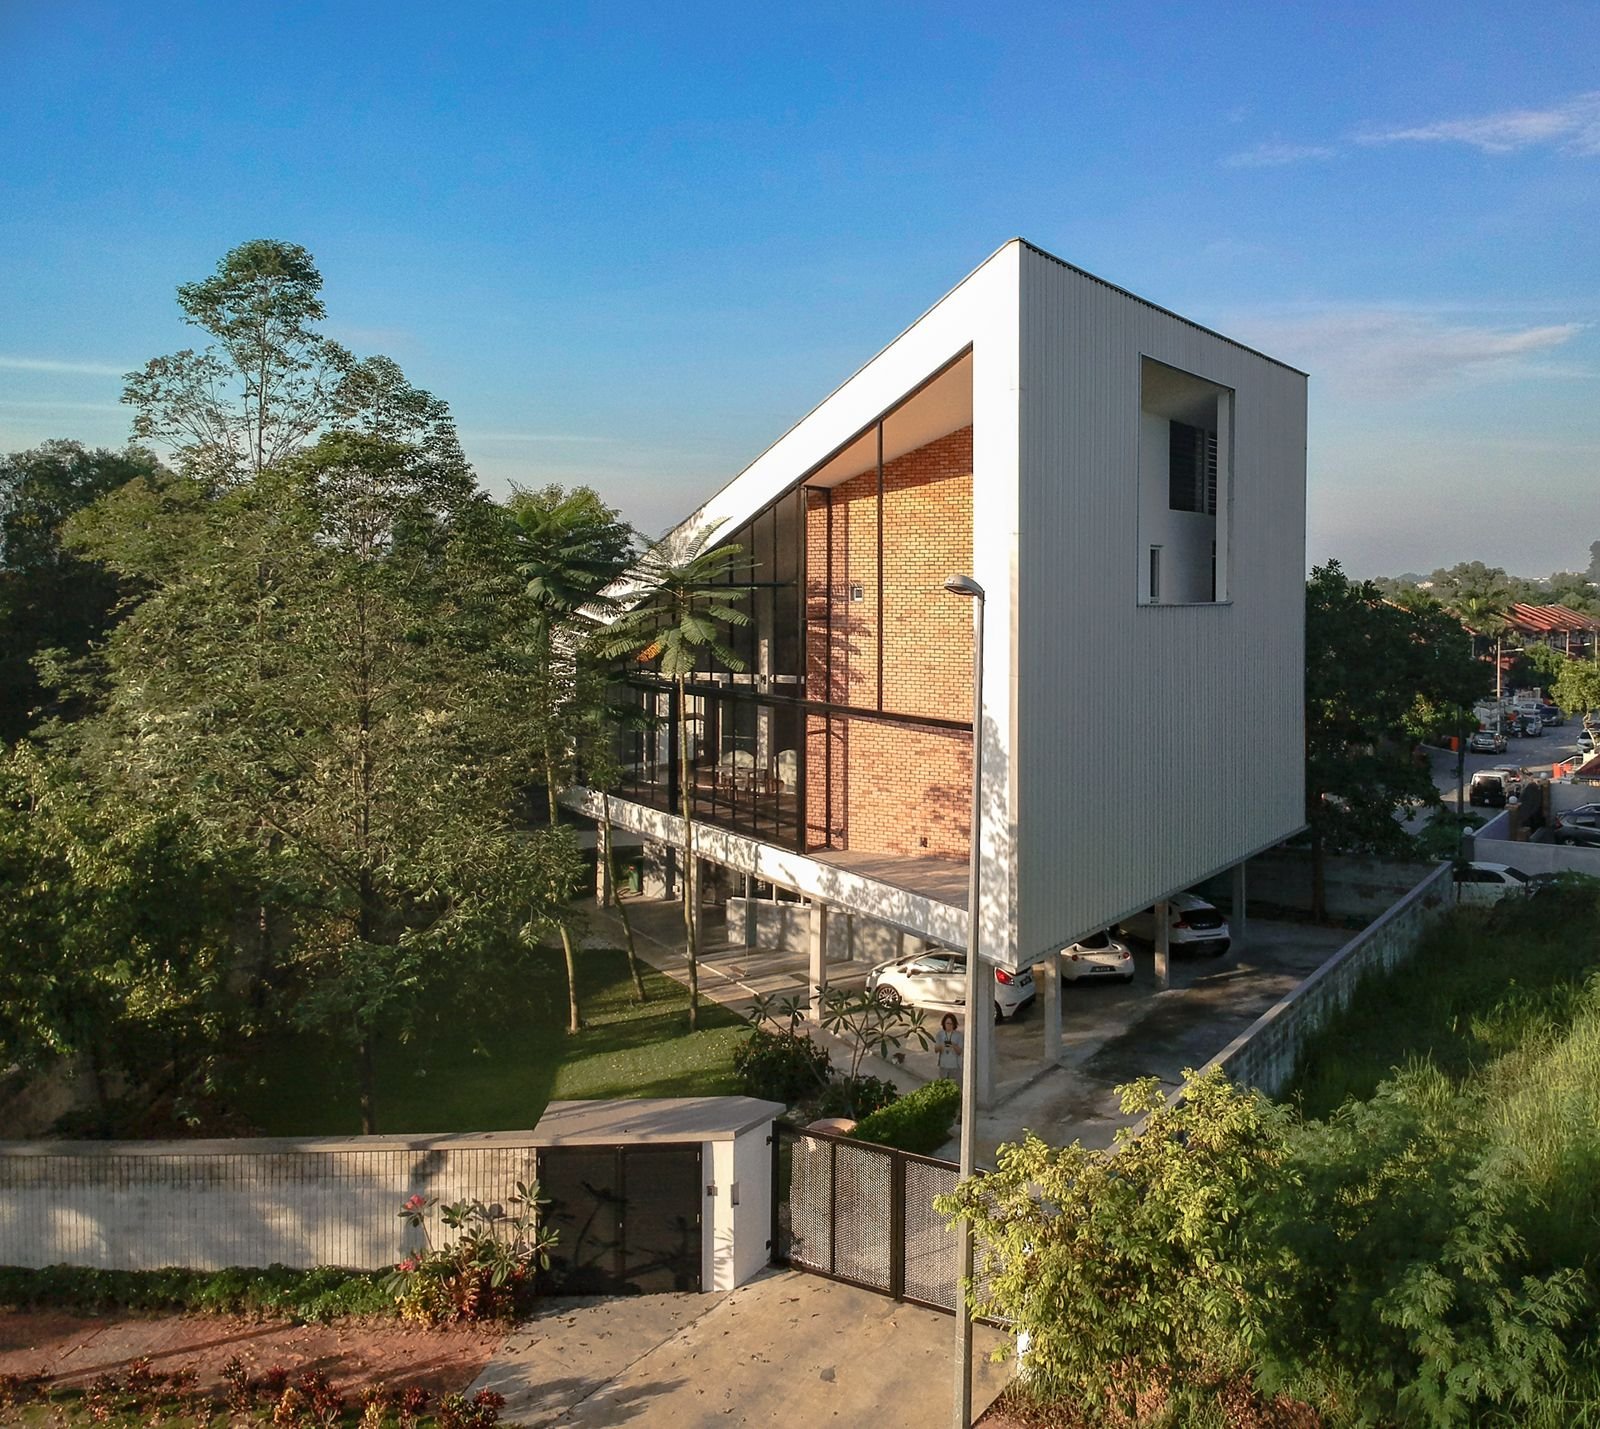 Gallery Of 38mews House Design Collective Architects 21 House Design Architect Architecture